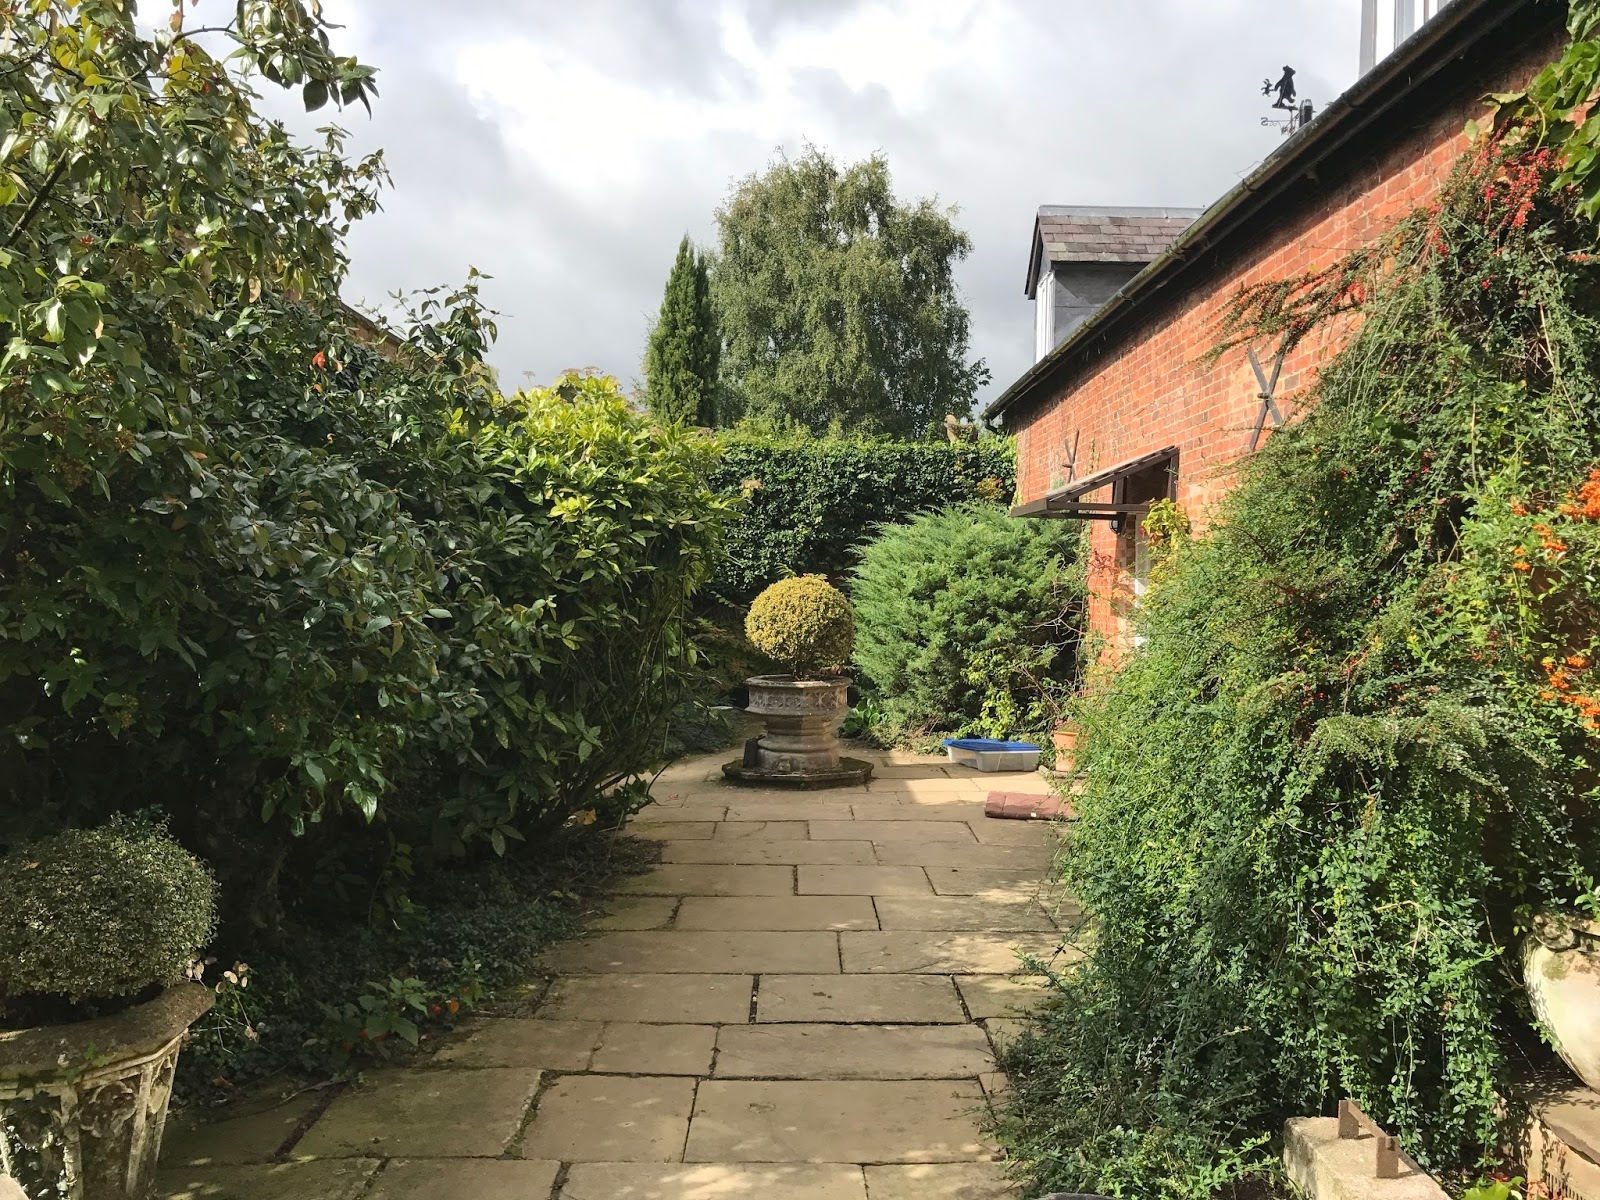 Thinking of the days: A day at Sulby Gardens